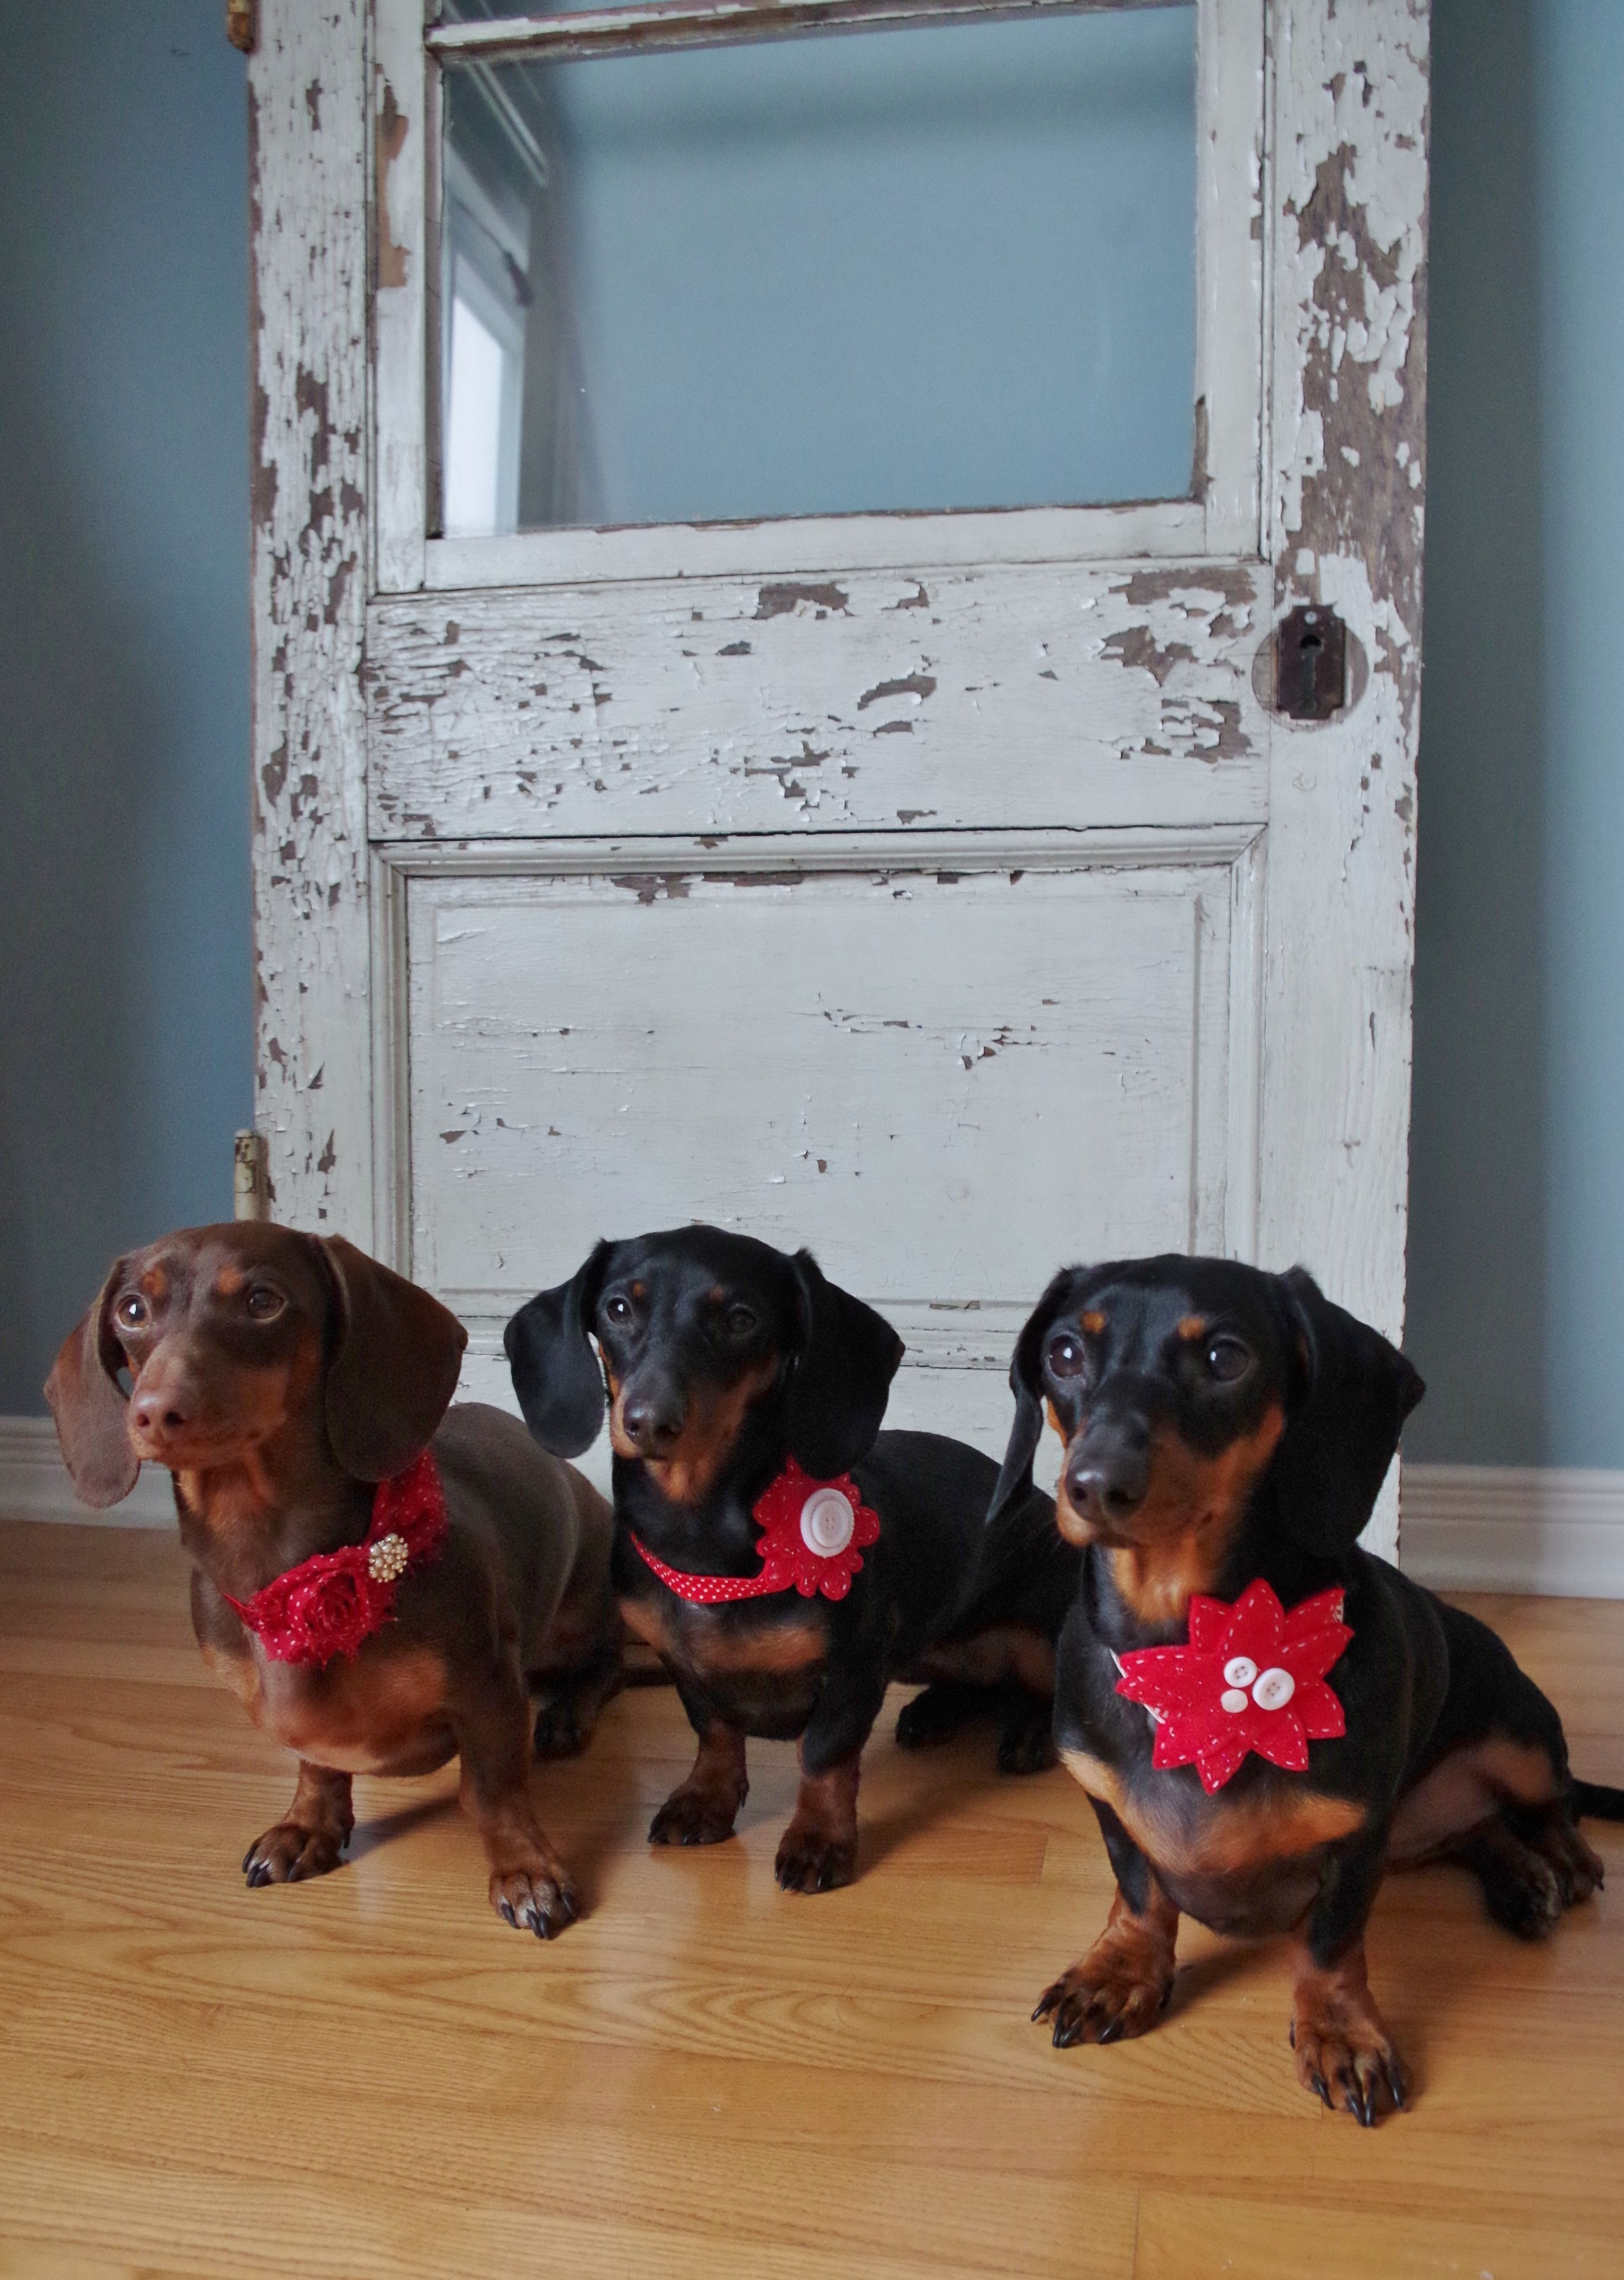 The girls rockin' their Christmas collars by Felt From the Heart XXOO.  https://www.etsy.com/ca/shop/FeltFromTheHeartXXOO?section_id=16206868&ref=shopsection_leftnav_6